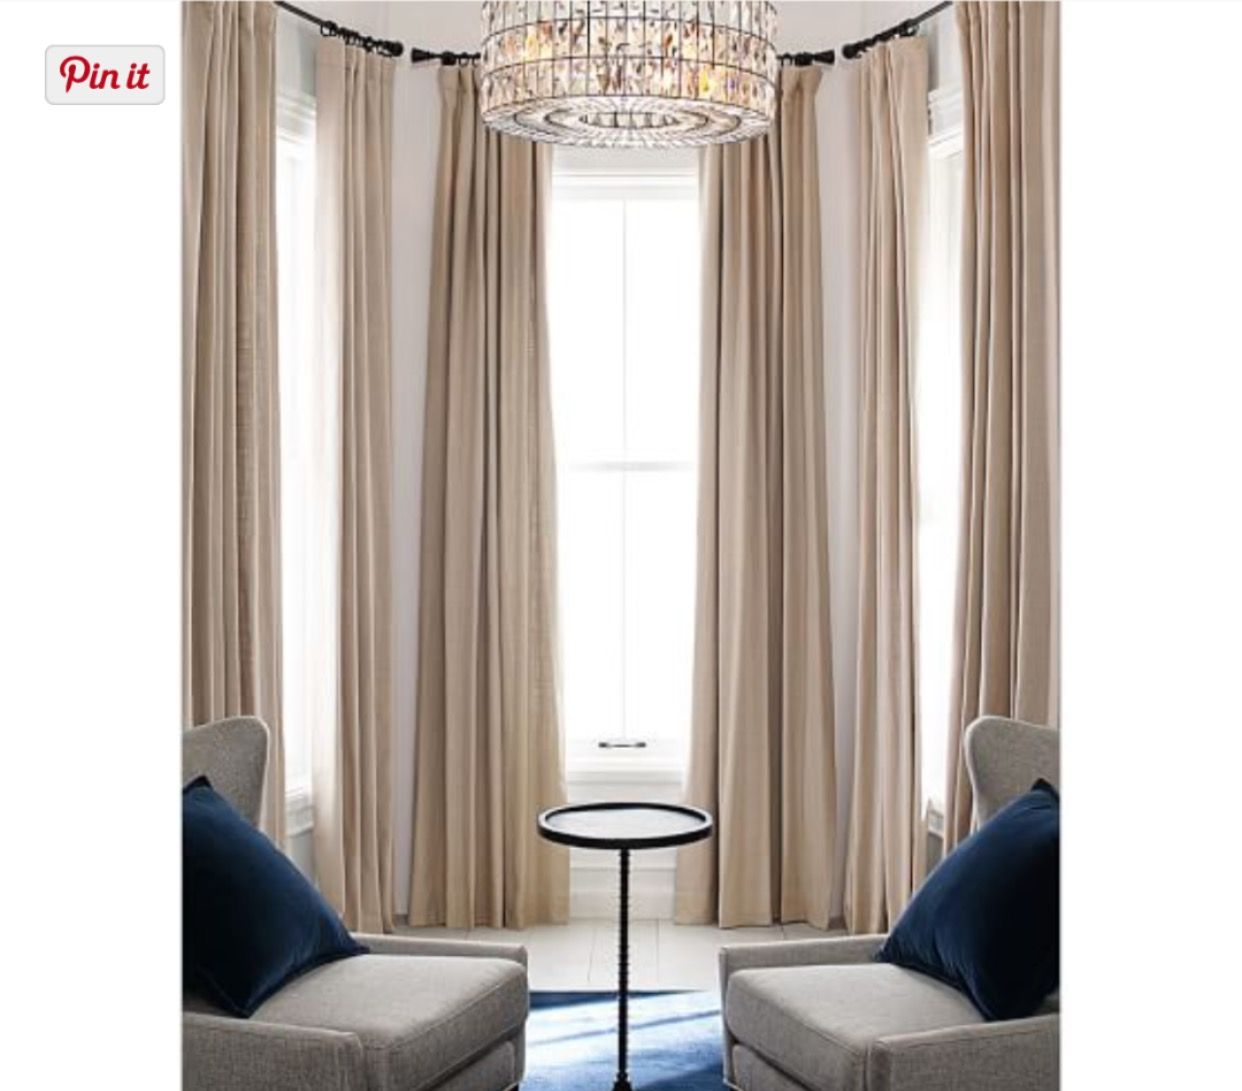 drapes for small windows gray white bathroom window love long panel window treatments havenly living room